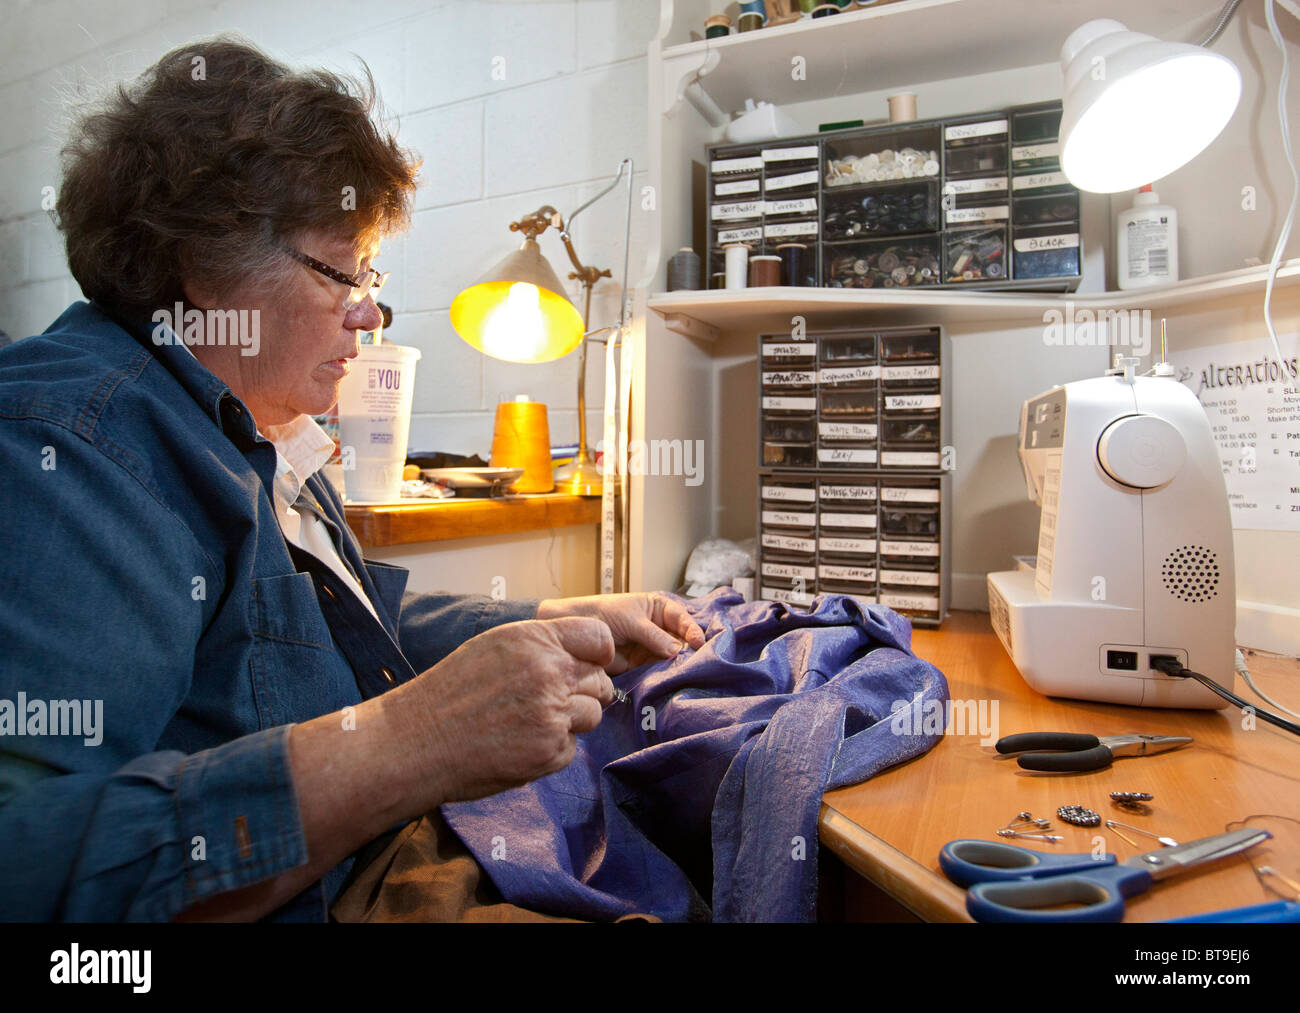 Broomfield, Colorado - Mary Kay Valencia, owner of Lionheart Cleaners, makes alterations on a customer's garment. - Stock Image